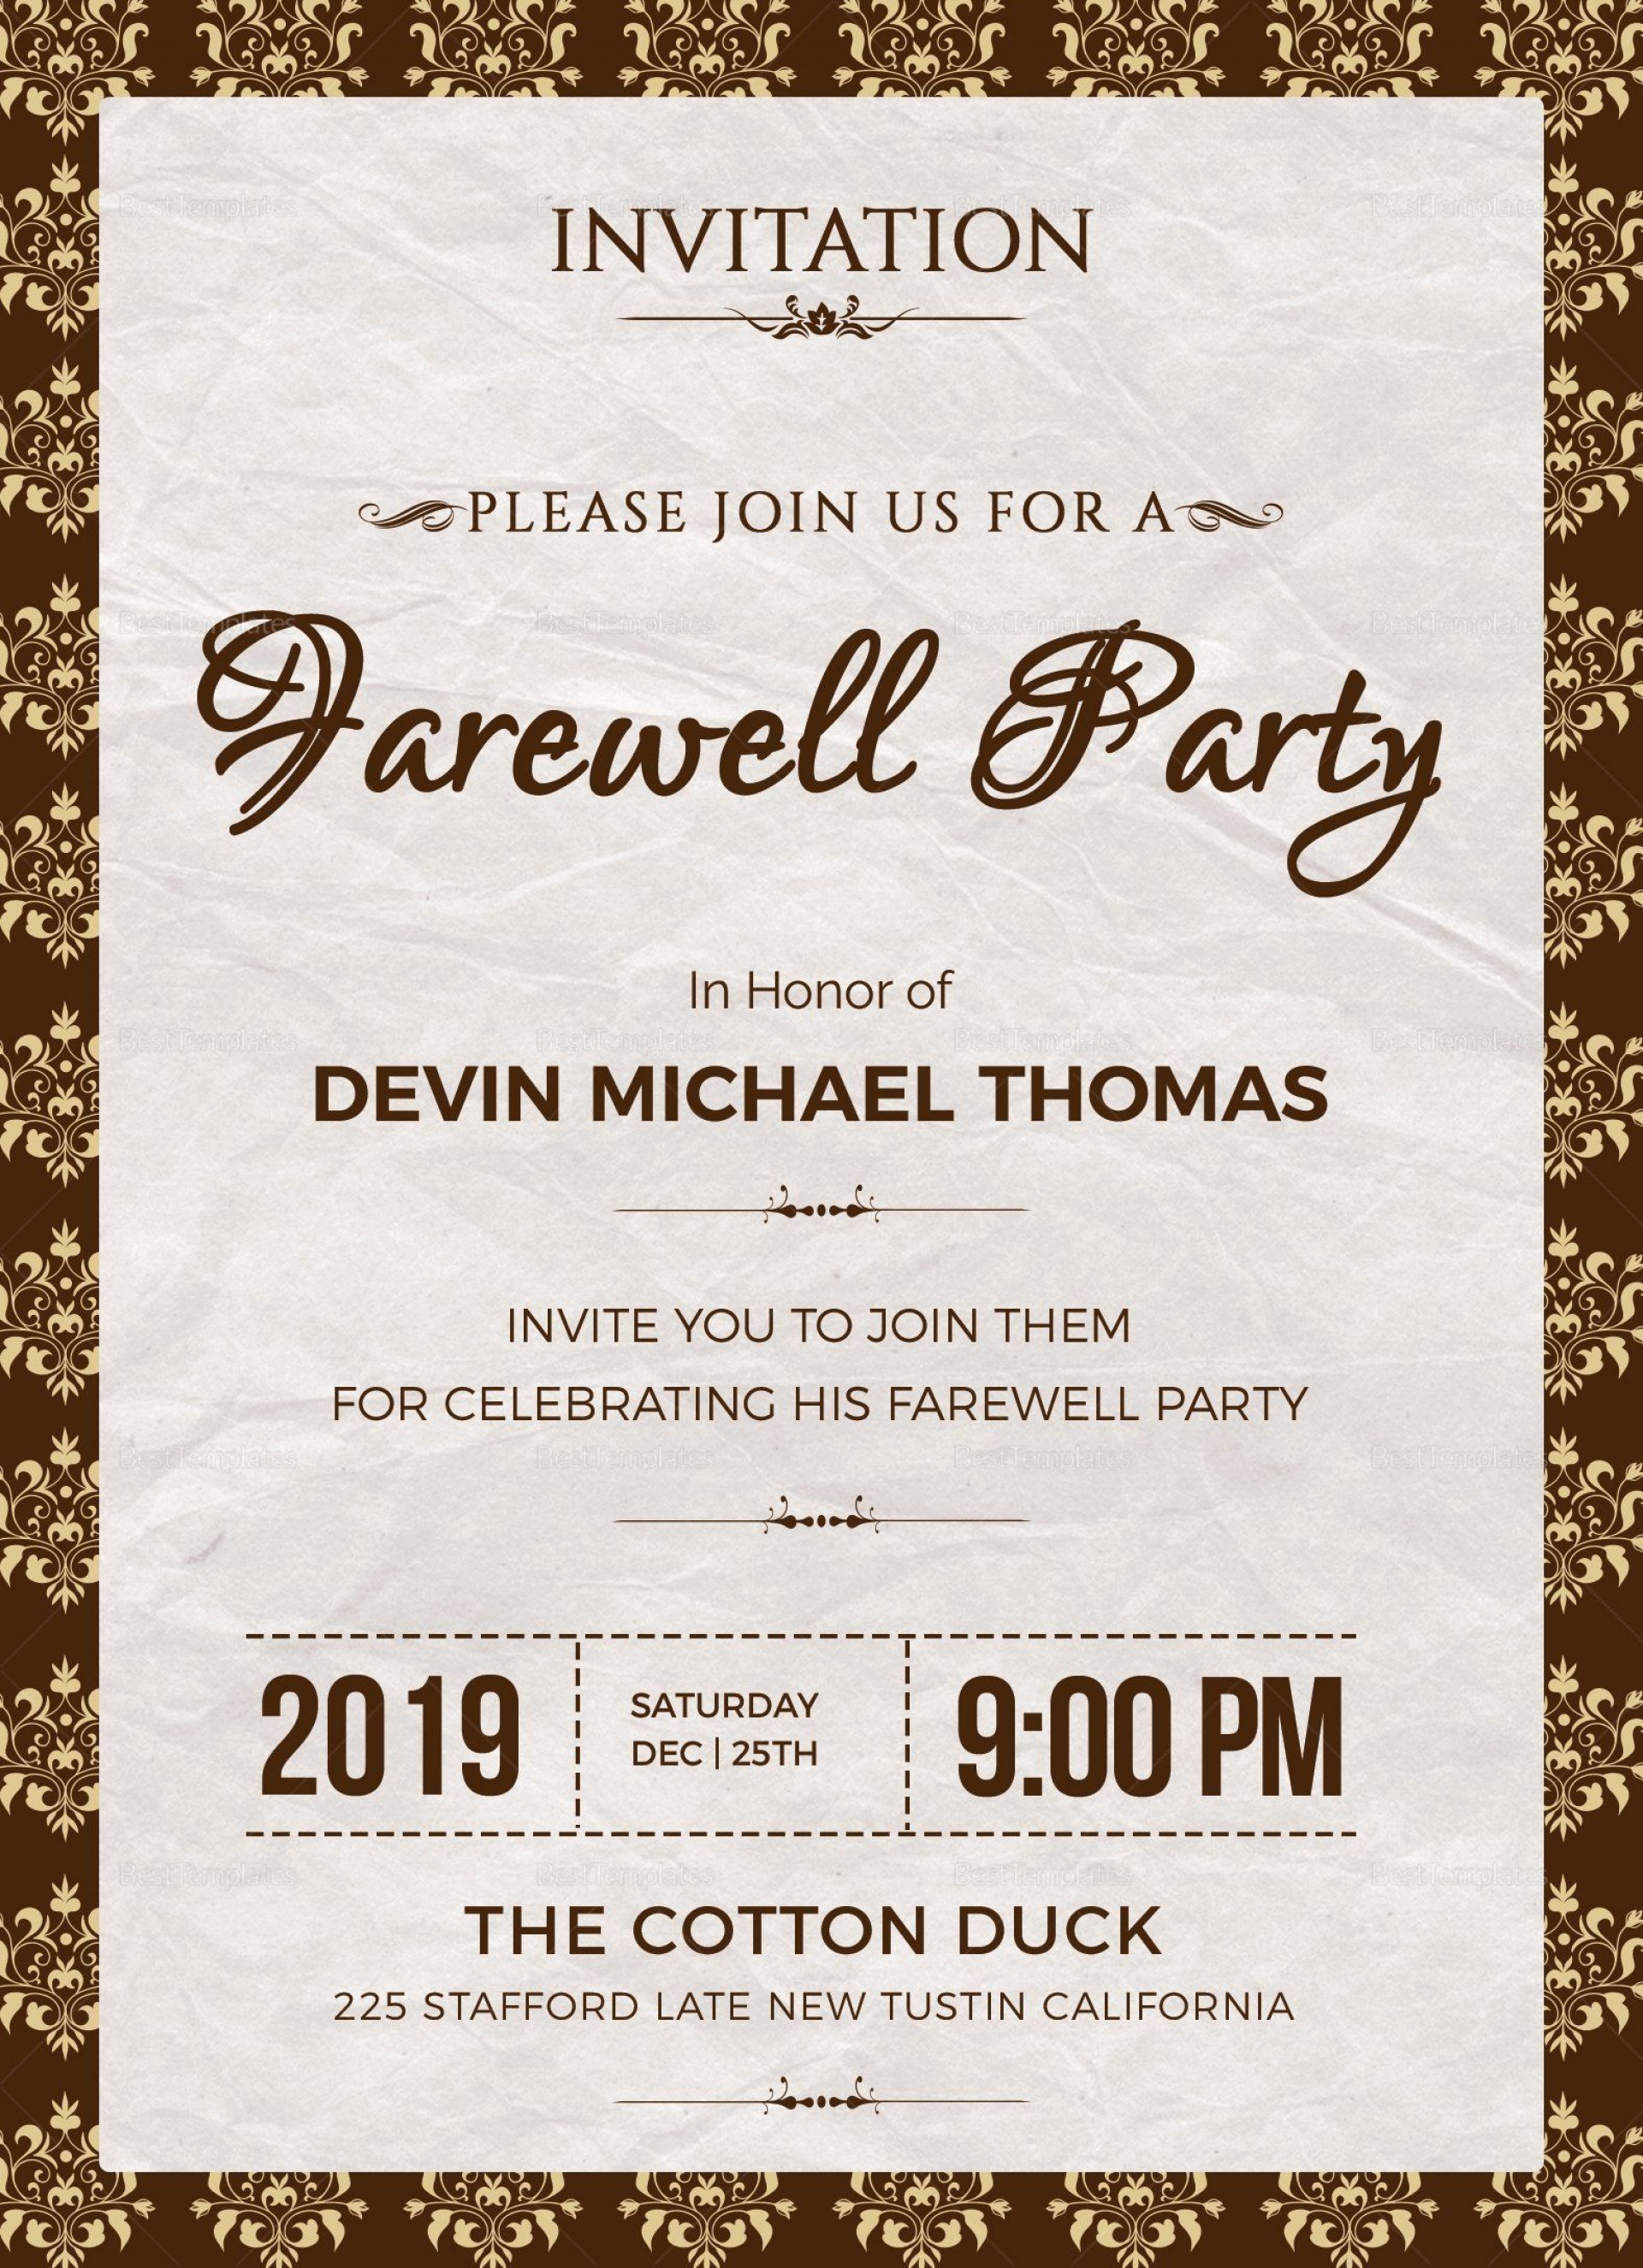 003 Exceptional Farewell Party Invitation Template Free High Definition  Email Printable Word1920